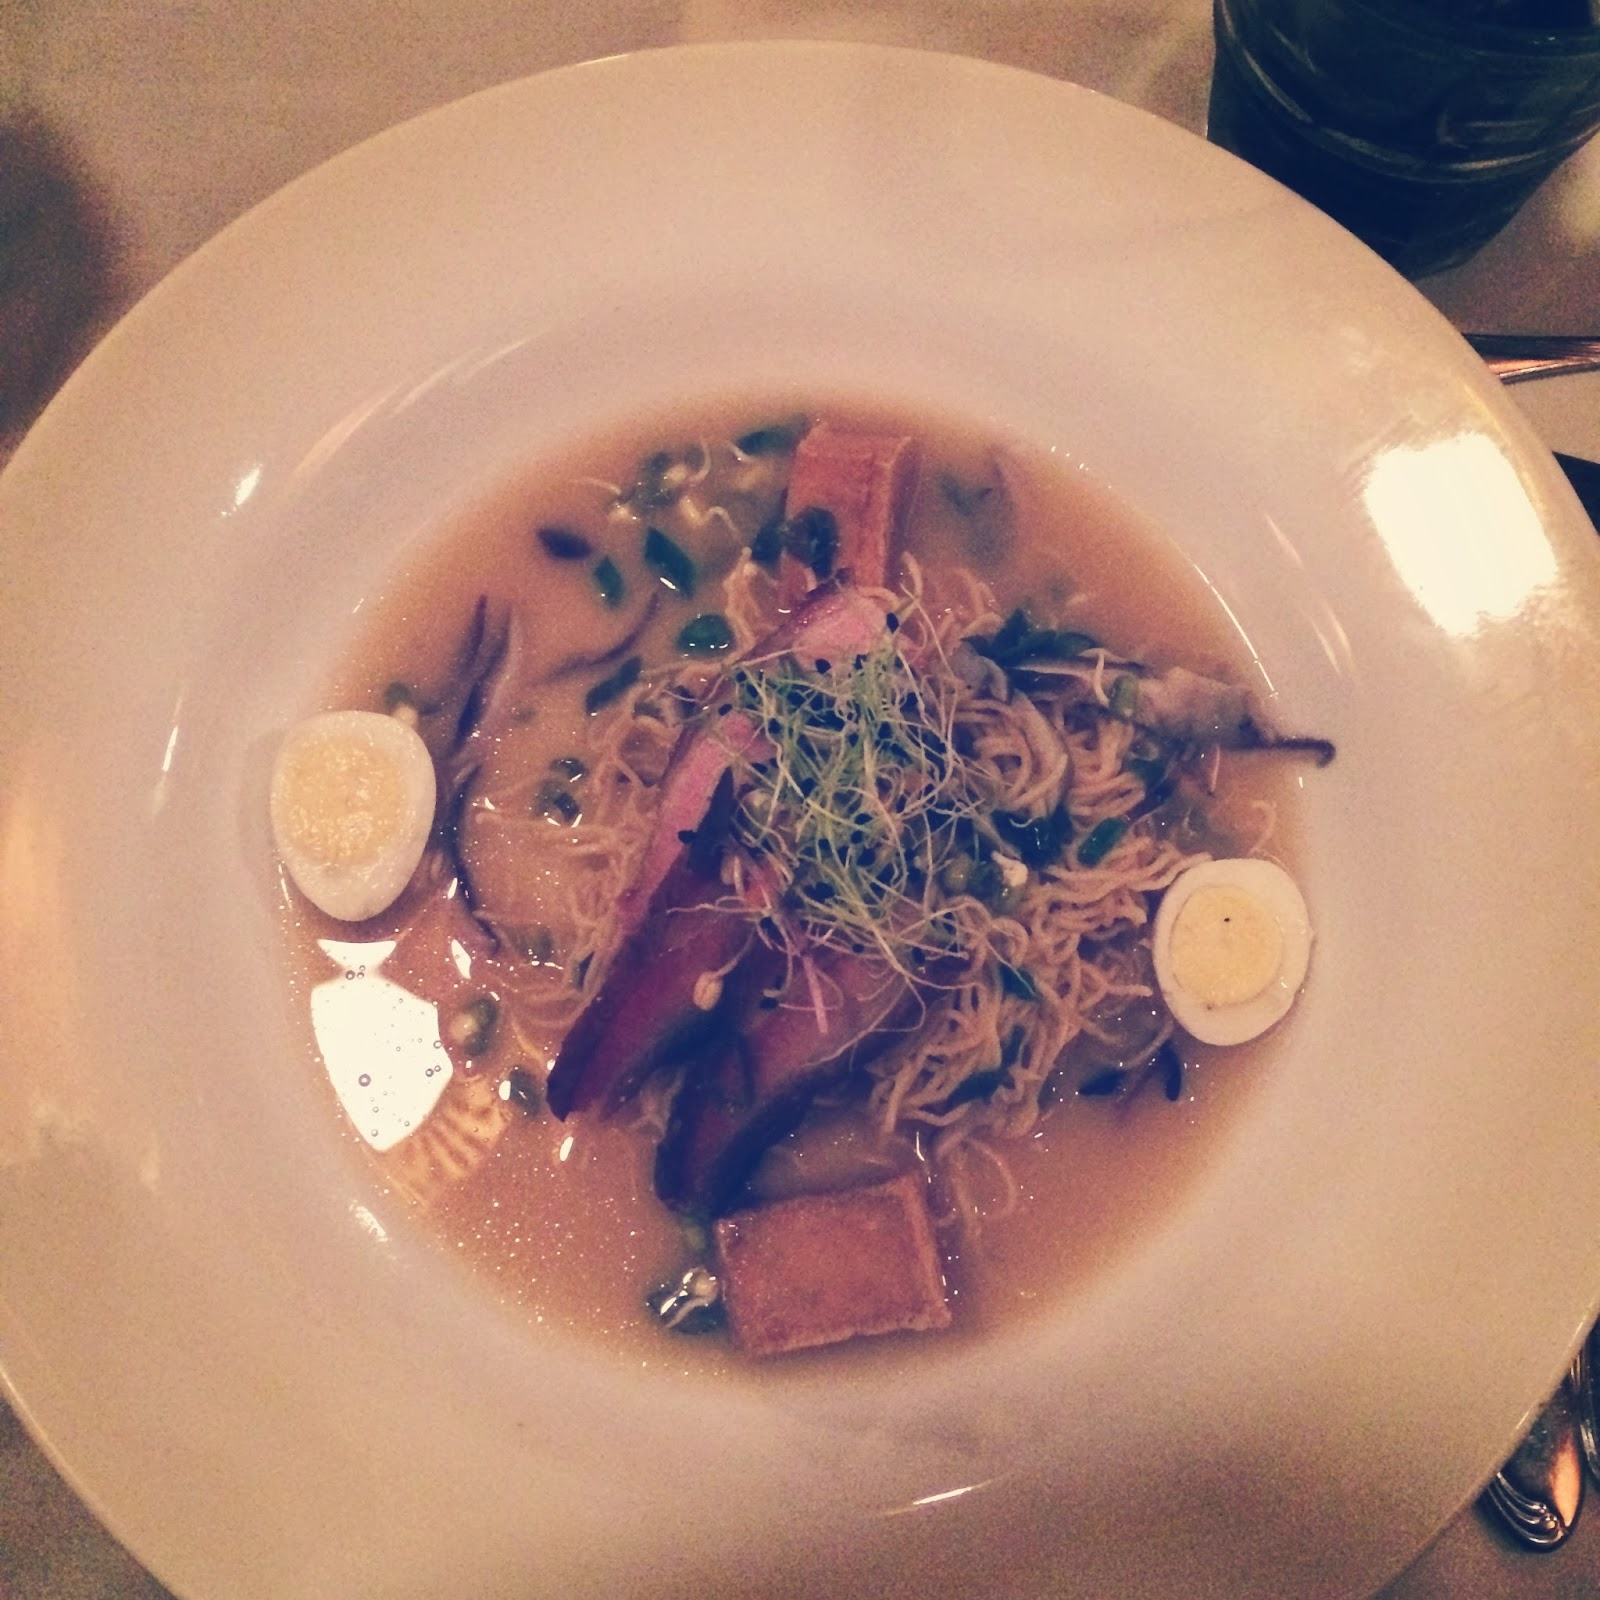 Louisiana Porkbelly Ramen, Local Quail Eggs, House Made Noodles, Shiitake Miso